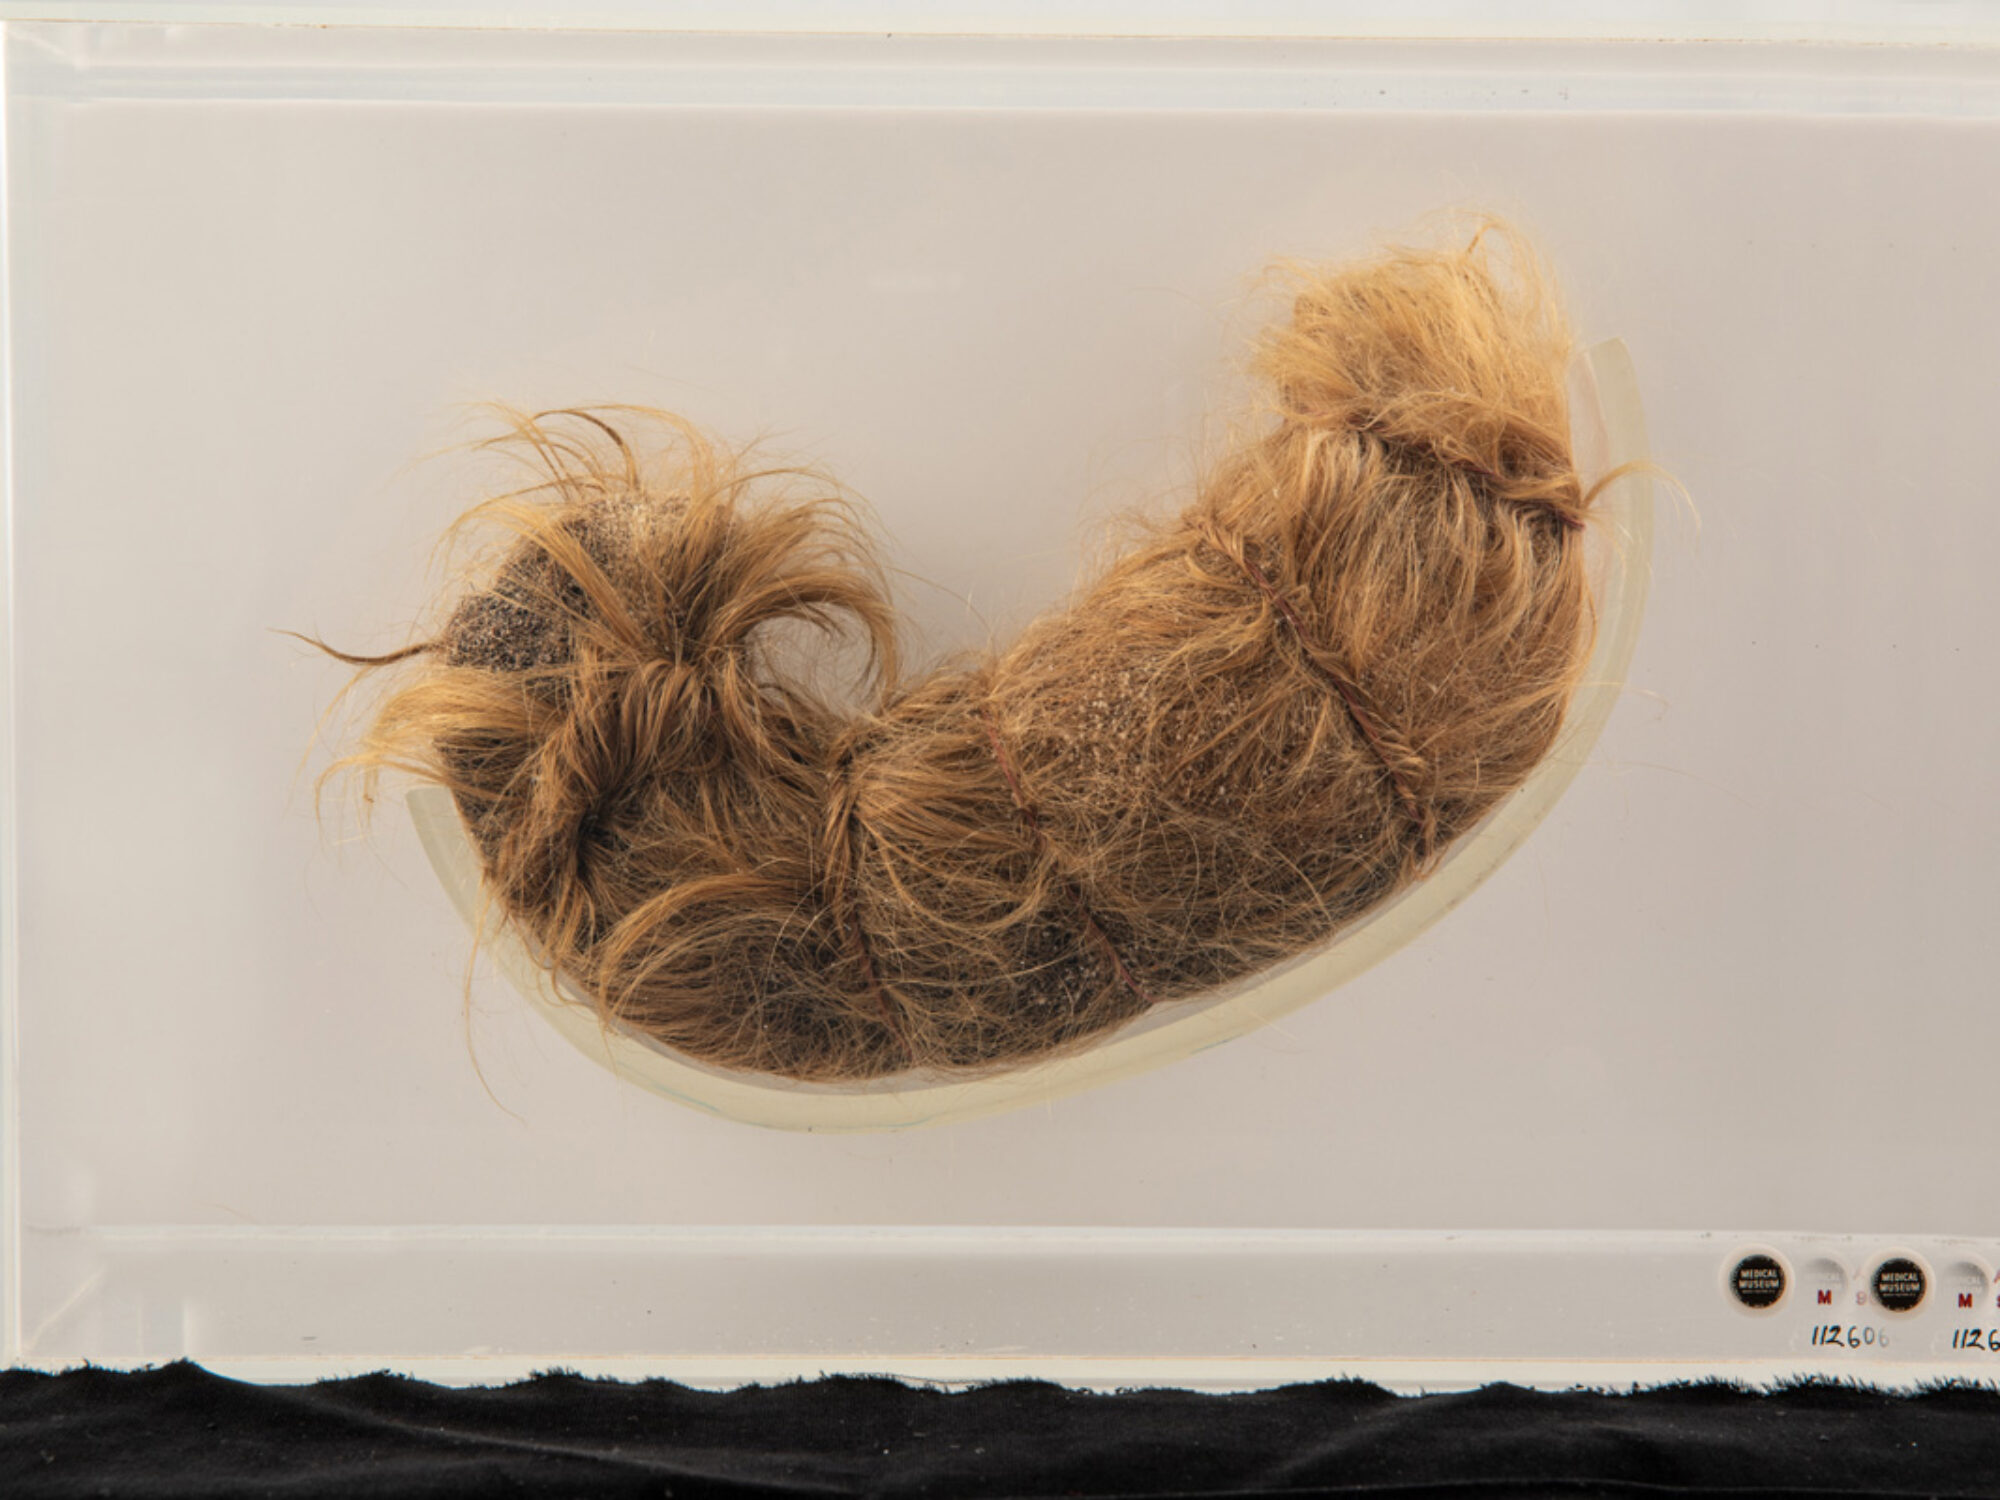 This legendary stomach-shaped hairball from the collection at the National Museum of Health and Medicine in Silver Spring, Maryland, was removed from a 12-year-old girl.